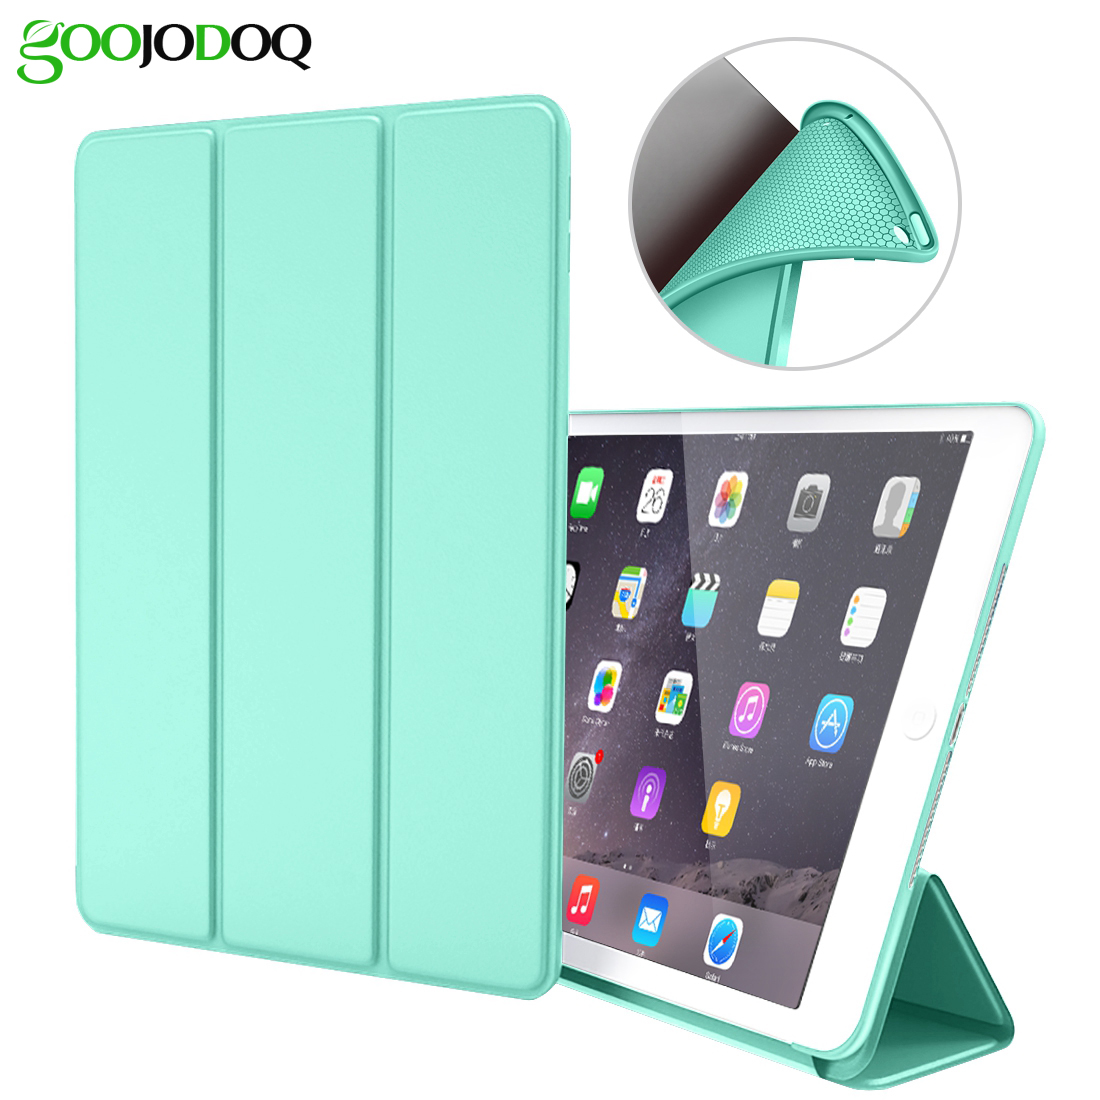 For iPad Pro 9.7 Case Silicone TPU Soft GOOJODOQ Smart Cover for Apple iPad Pro 9.7 inch Case PU Leather 2016 A1673/A1674/A1675 surehin nice tpu silicone soft edge cover for apple ipad air 2 case leather sleeve transparent kids thin smart cover case skin